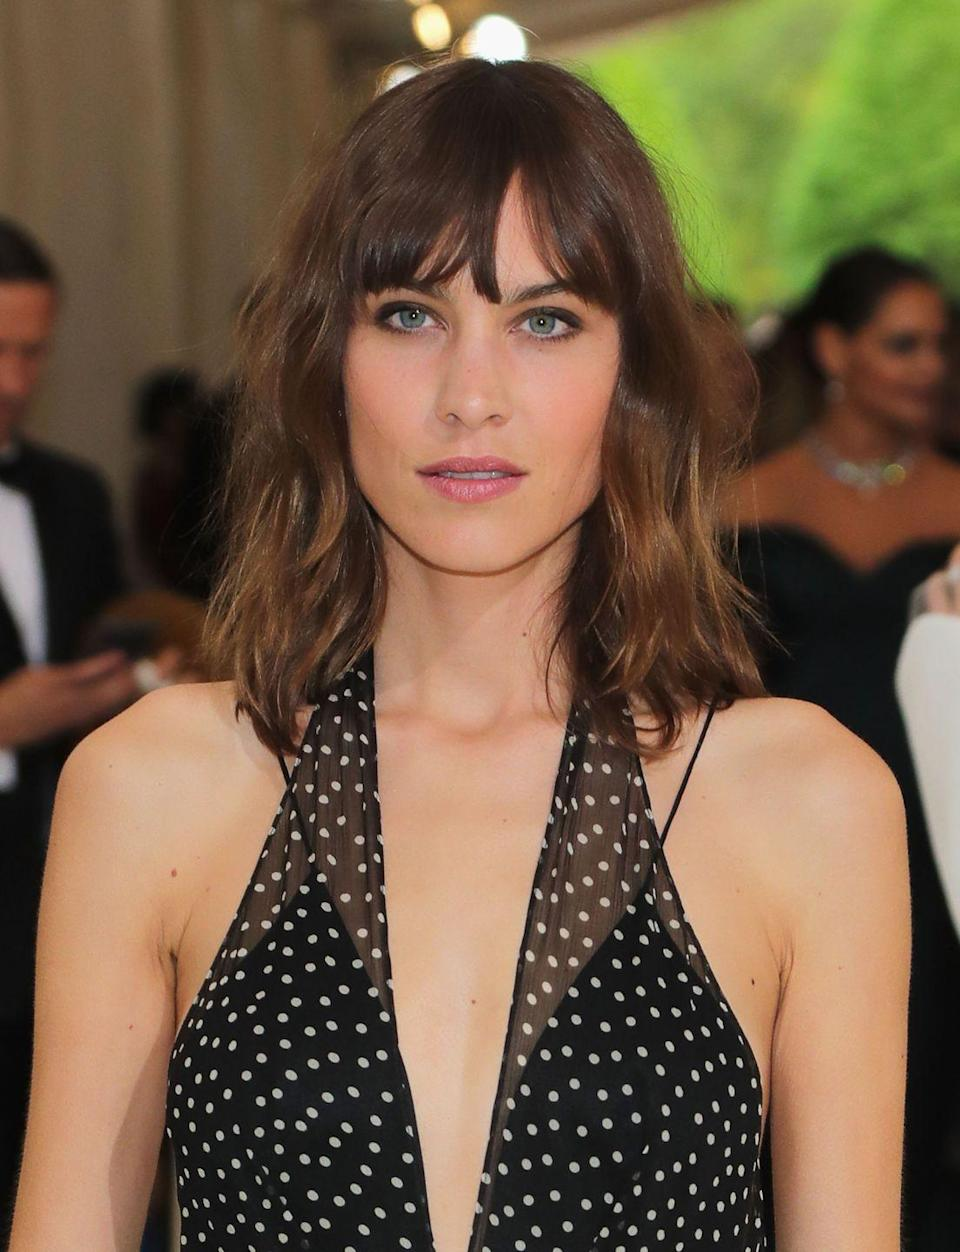 <p>A modernized version of the '70s shag haircut, complete with choppy bangs and layers mid-cut, was seen on A-listers like Taylor Swift to Alexa Chung a few years ago.</p>